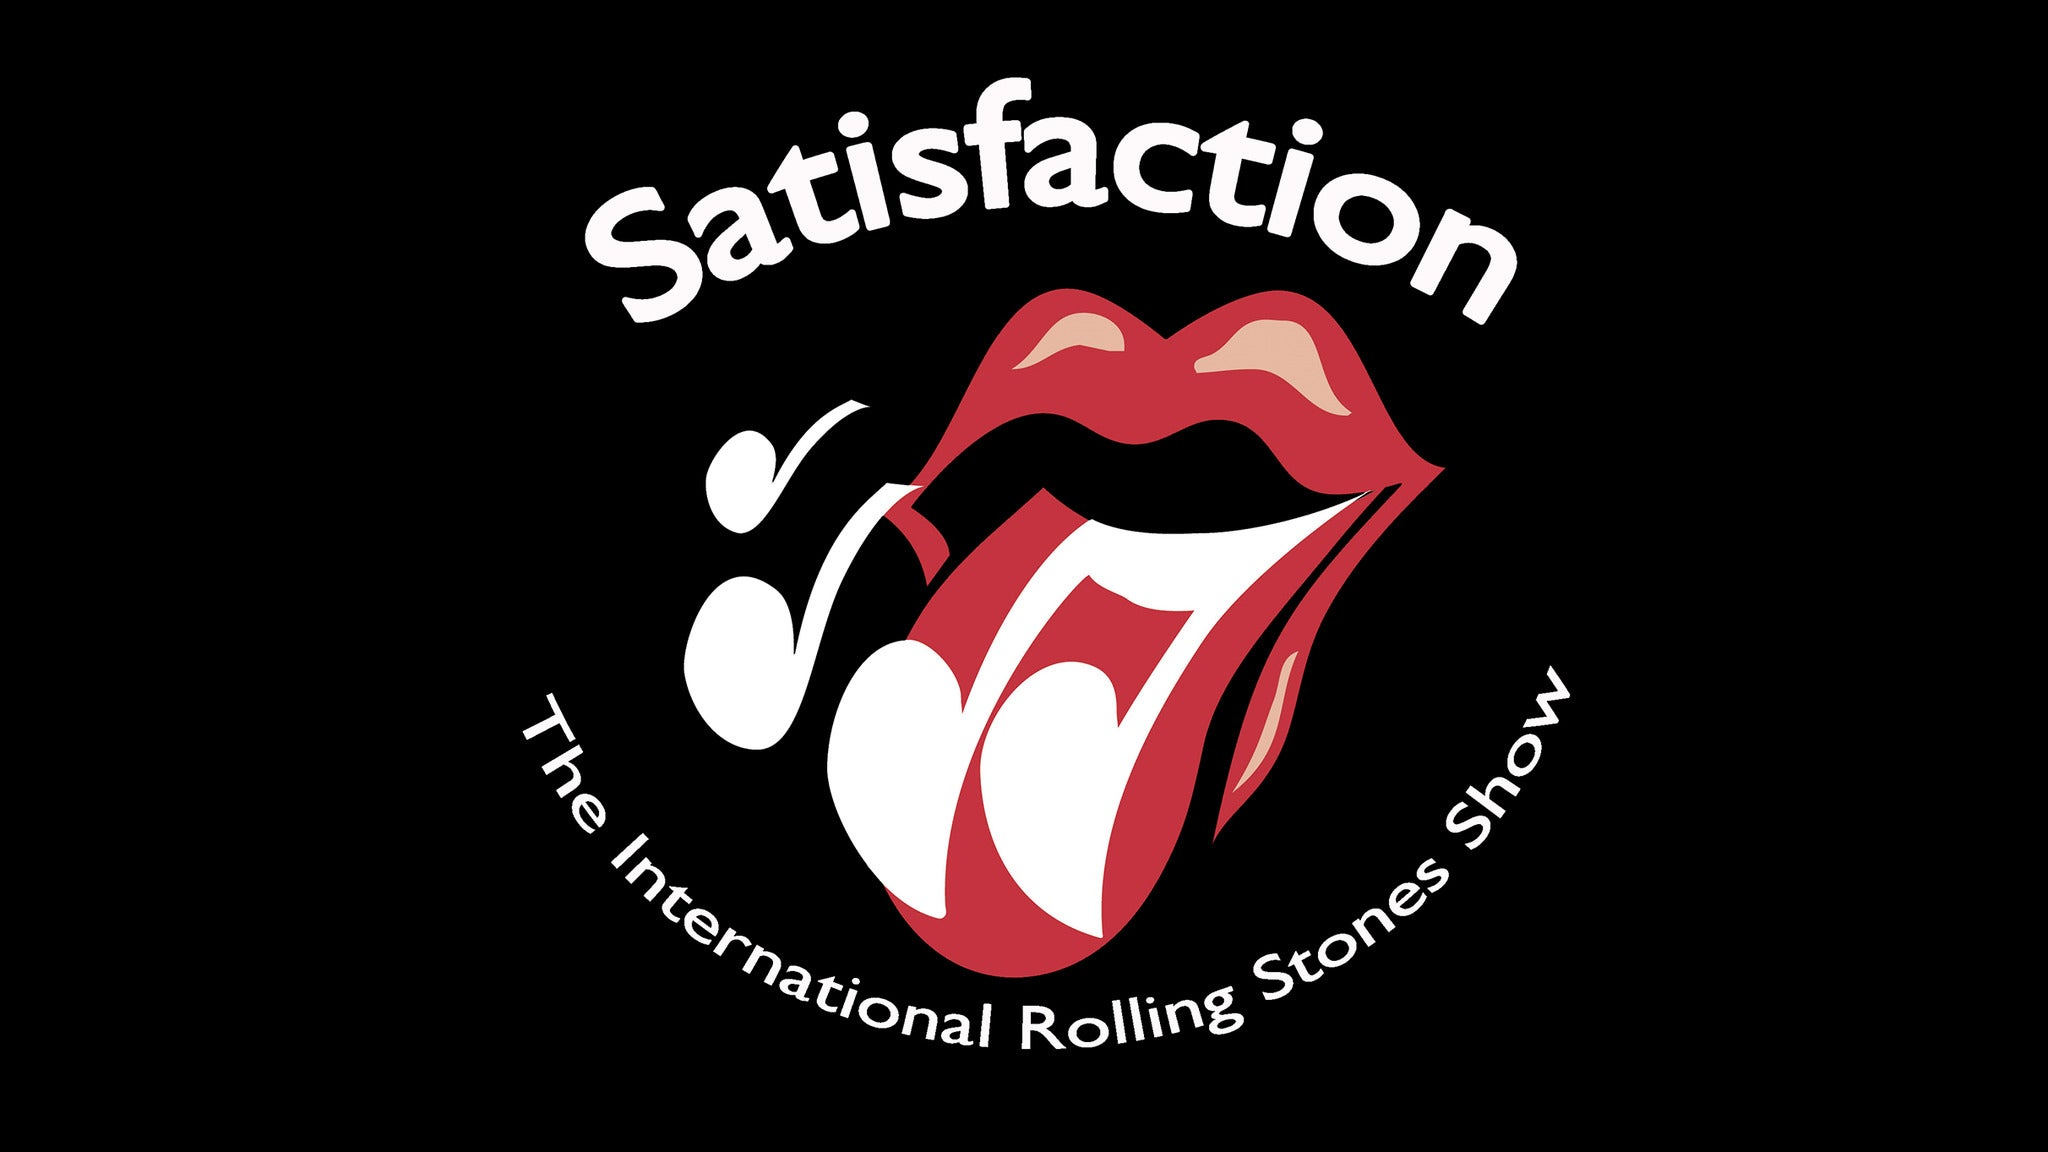 Satisfaction - The International Rolling Stones Tribute Show